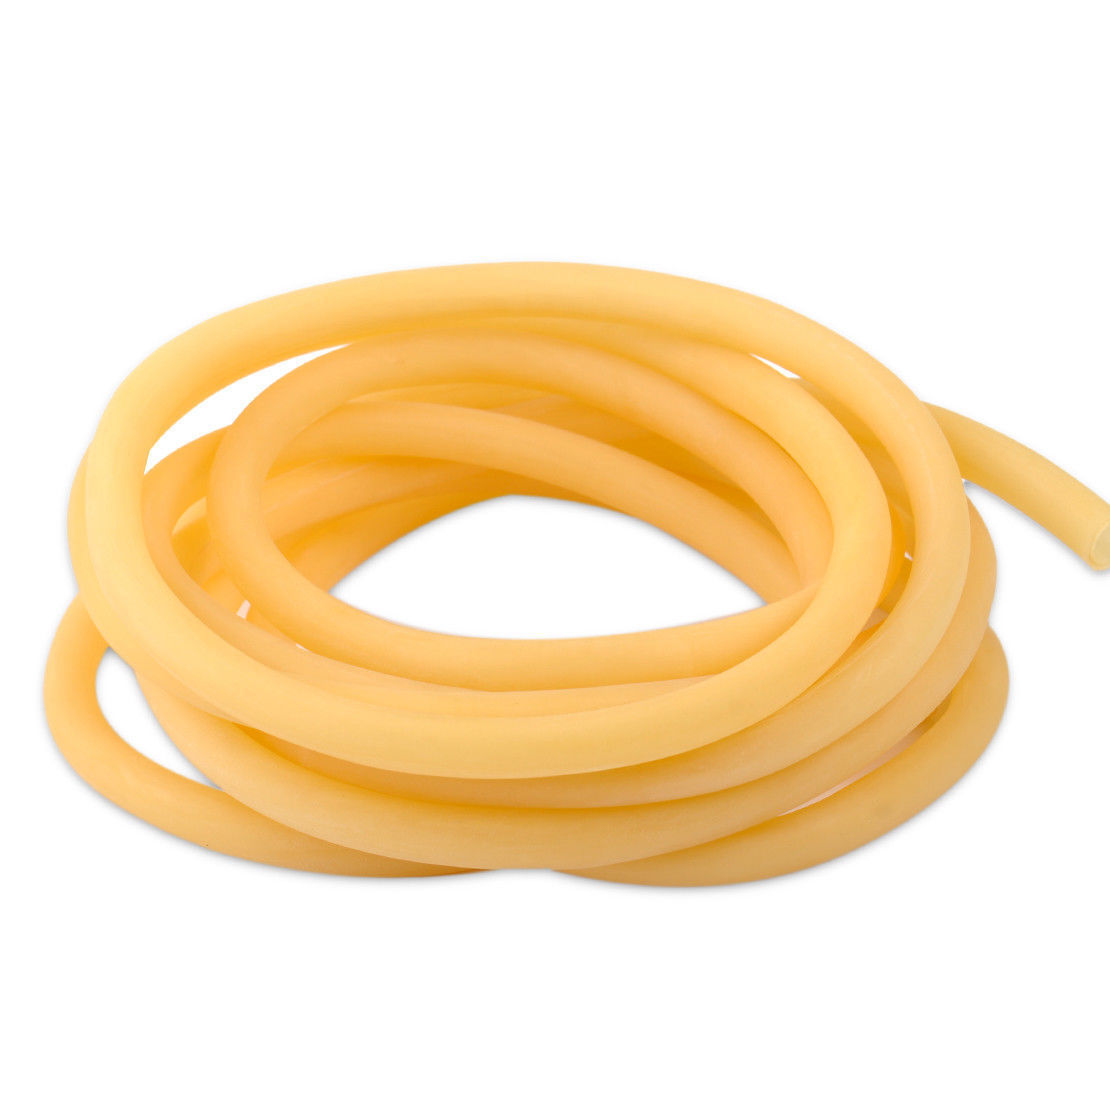 3m 6*9mm Natural Latex Rubber Band Rubber Hose For Slingshot Catapult Surgical Tube Elastic Parts Latest Technology Home Improvement